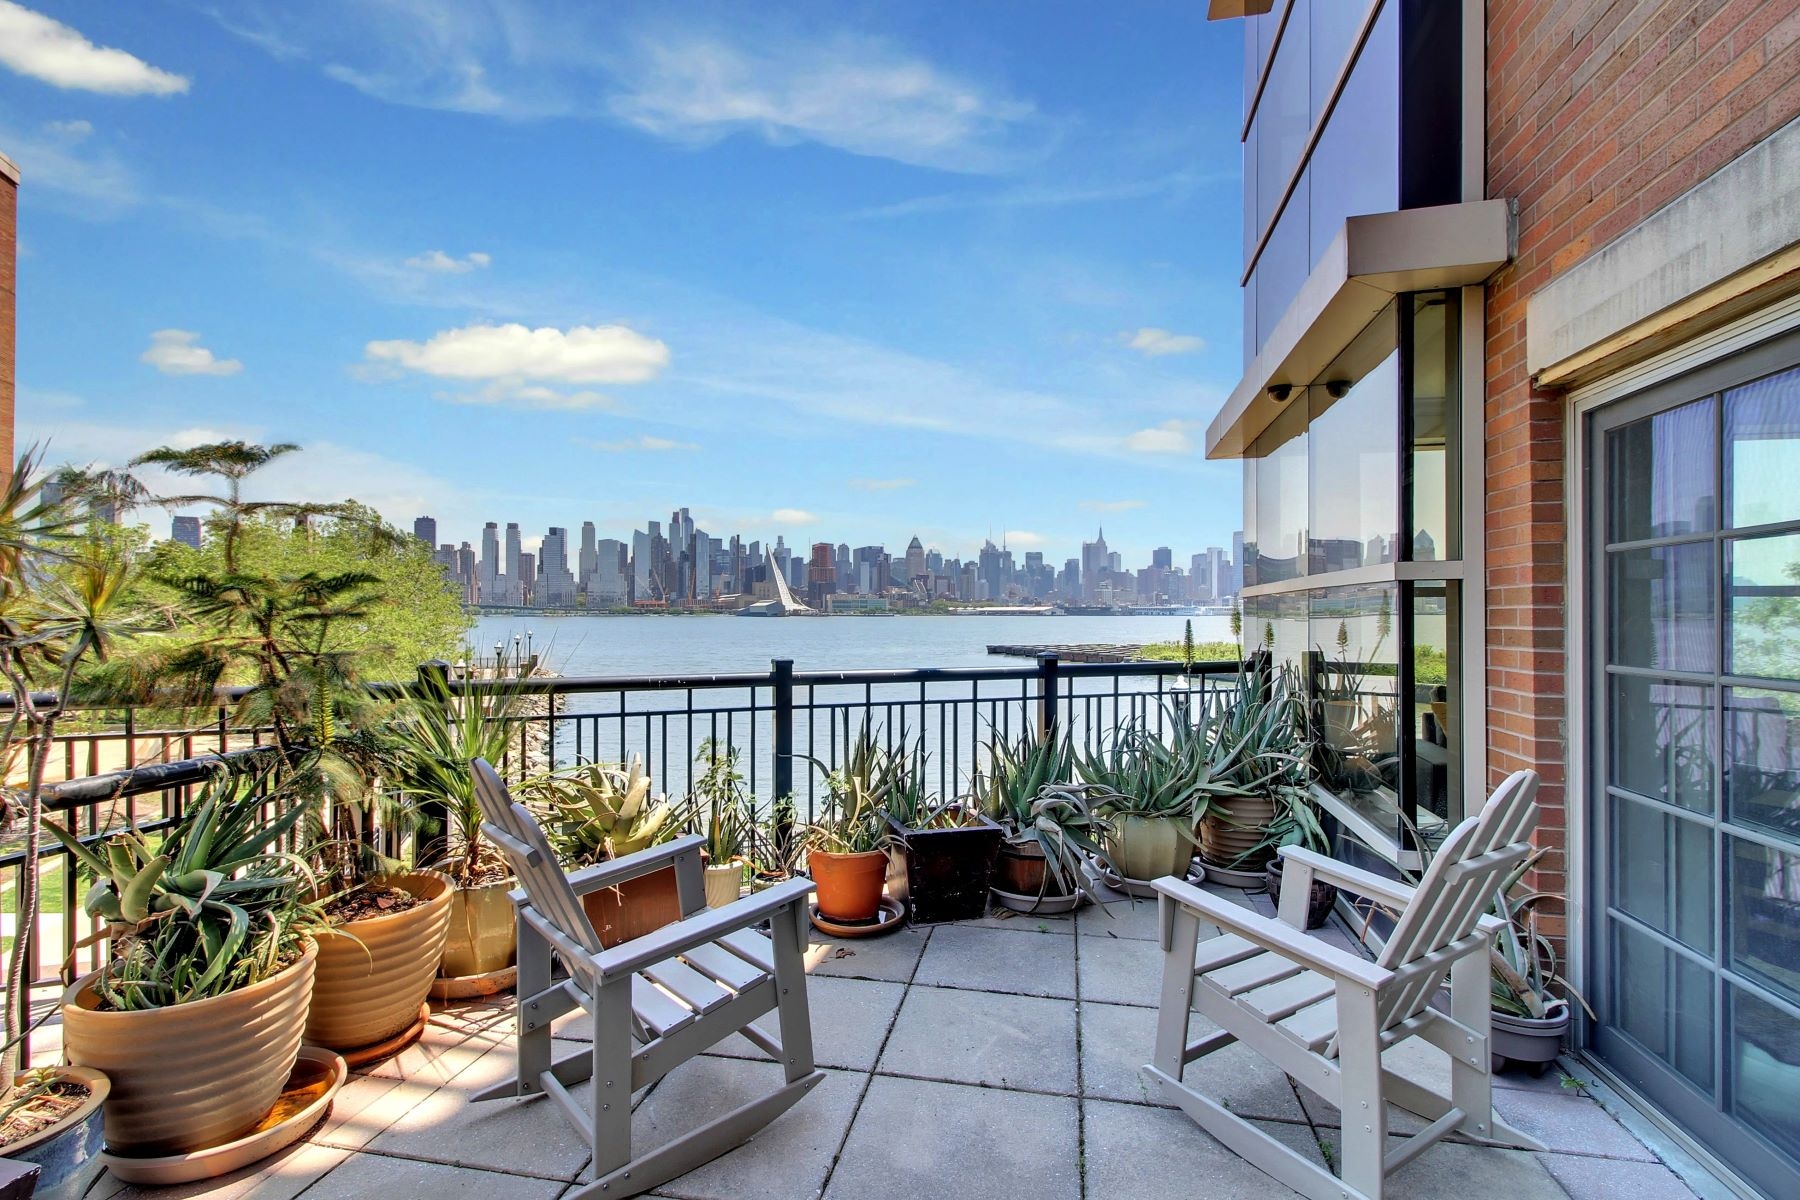 Кондоминиум для того Продажа на Spectacular Manhattan Views at GRANDVIEW! 22 Ave at Port Imperial #114 West New York, Нью-Джерси 07093 Соединенные Штаты